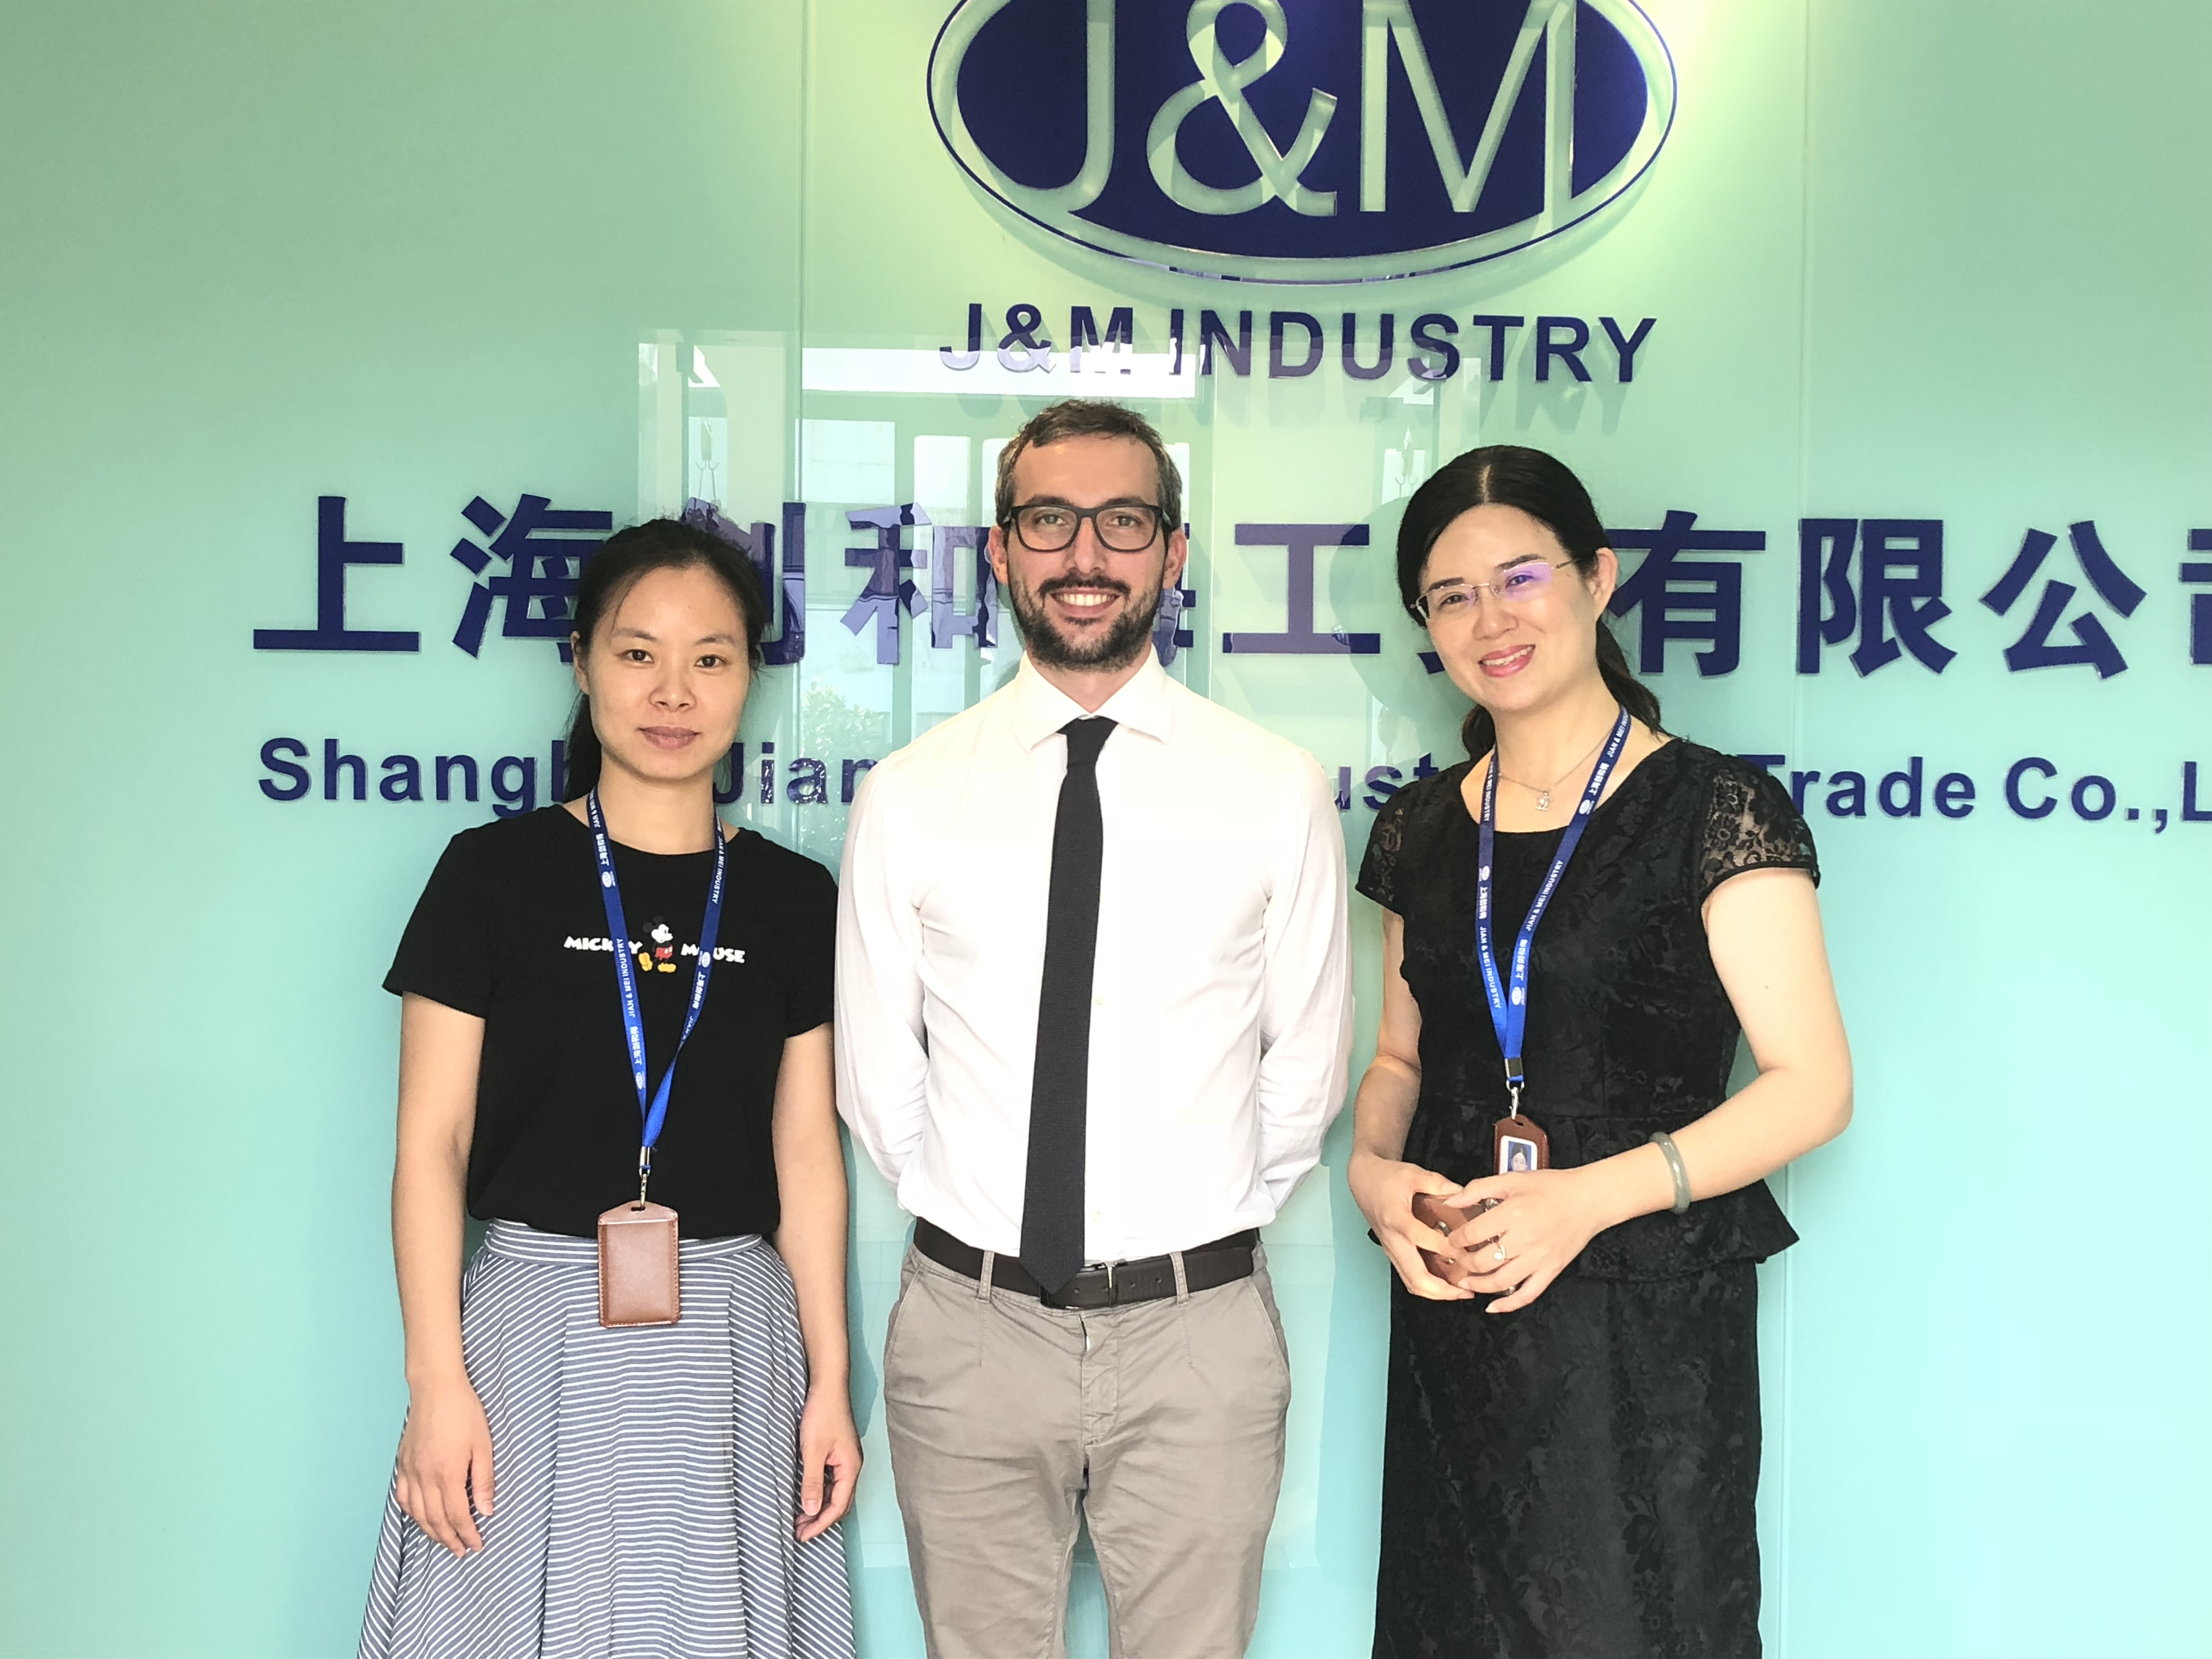 Sep. 4th 2018, One of our customers from Italy visited us